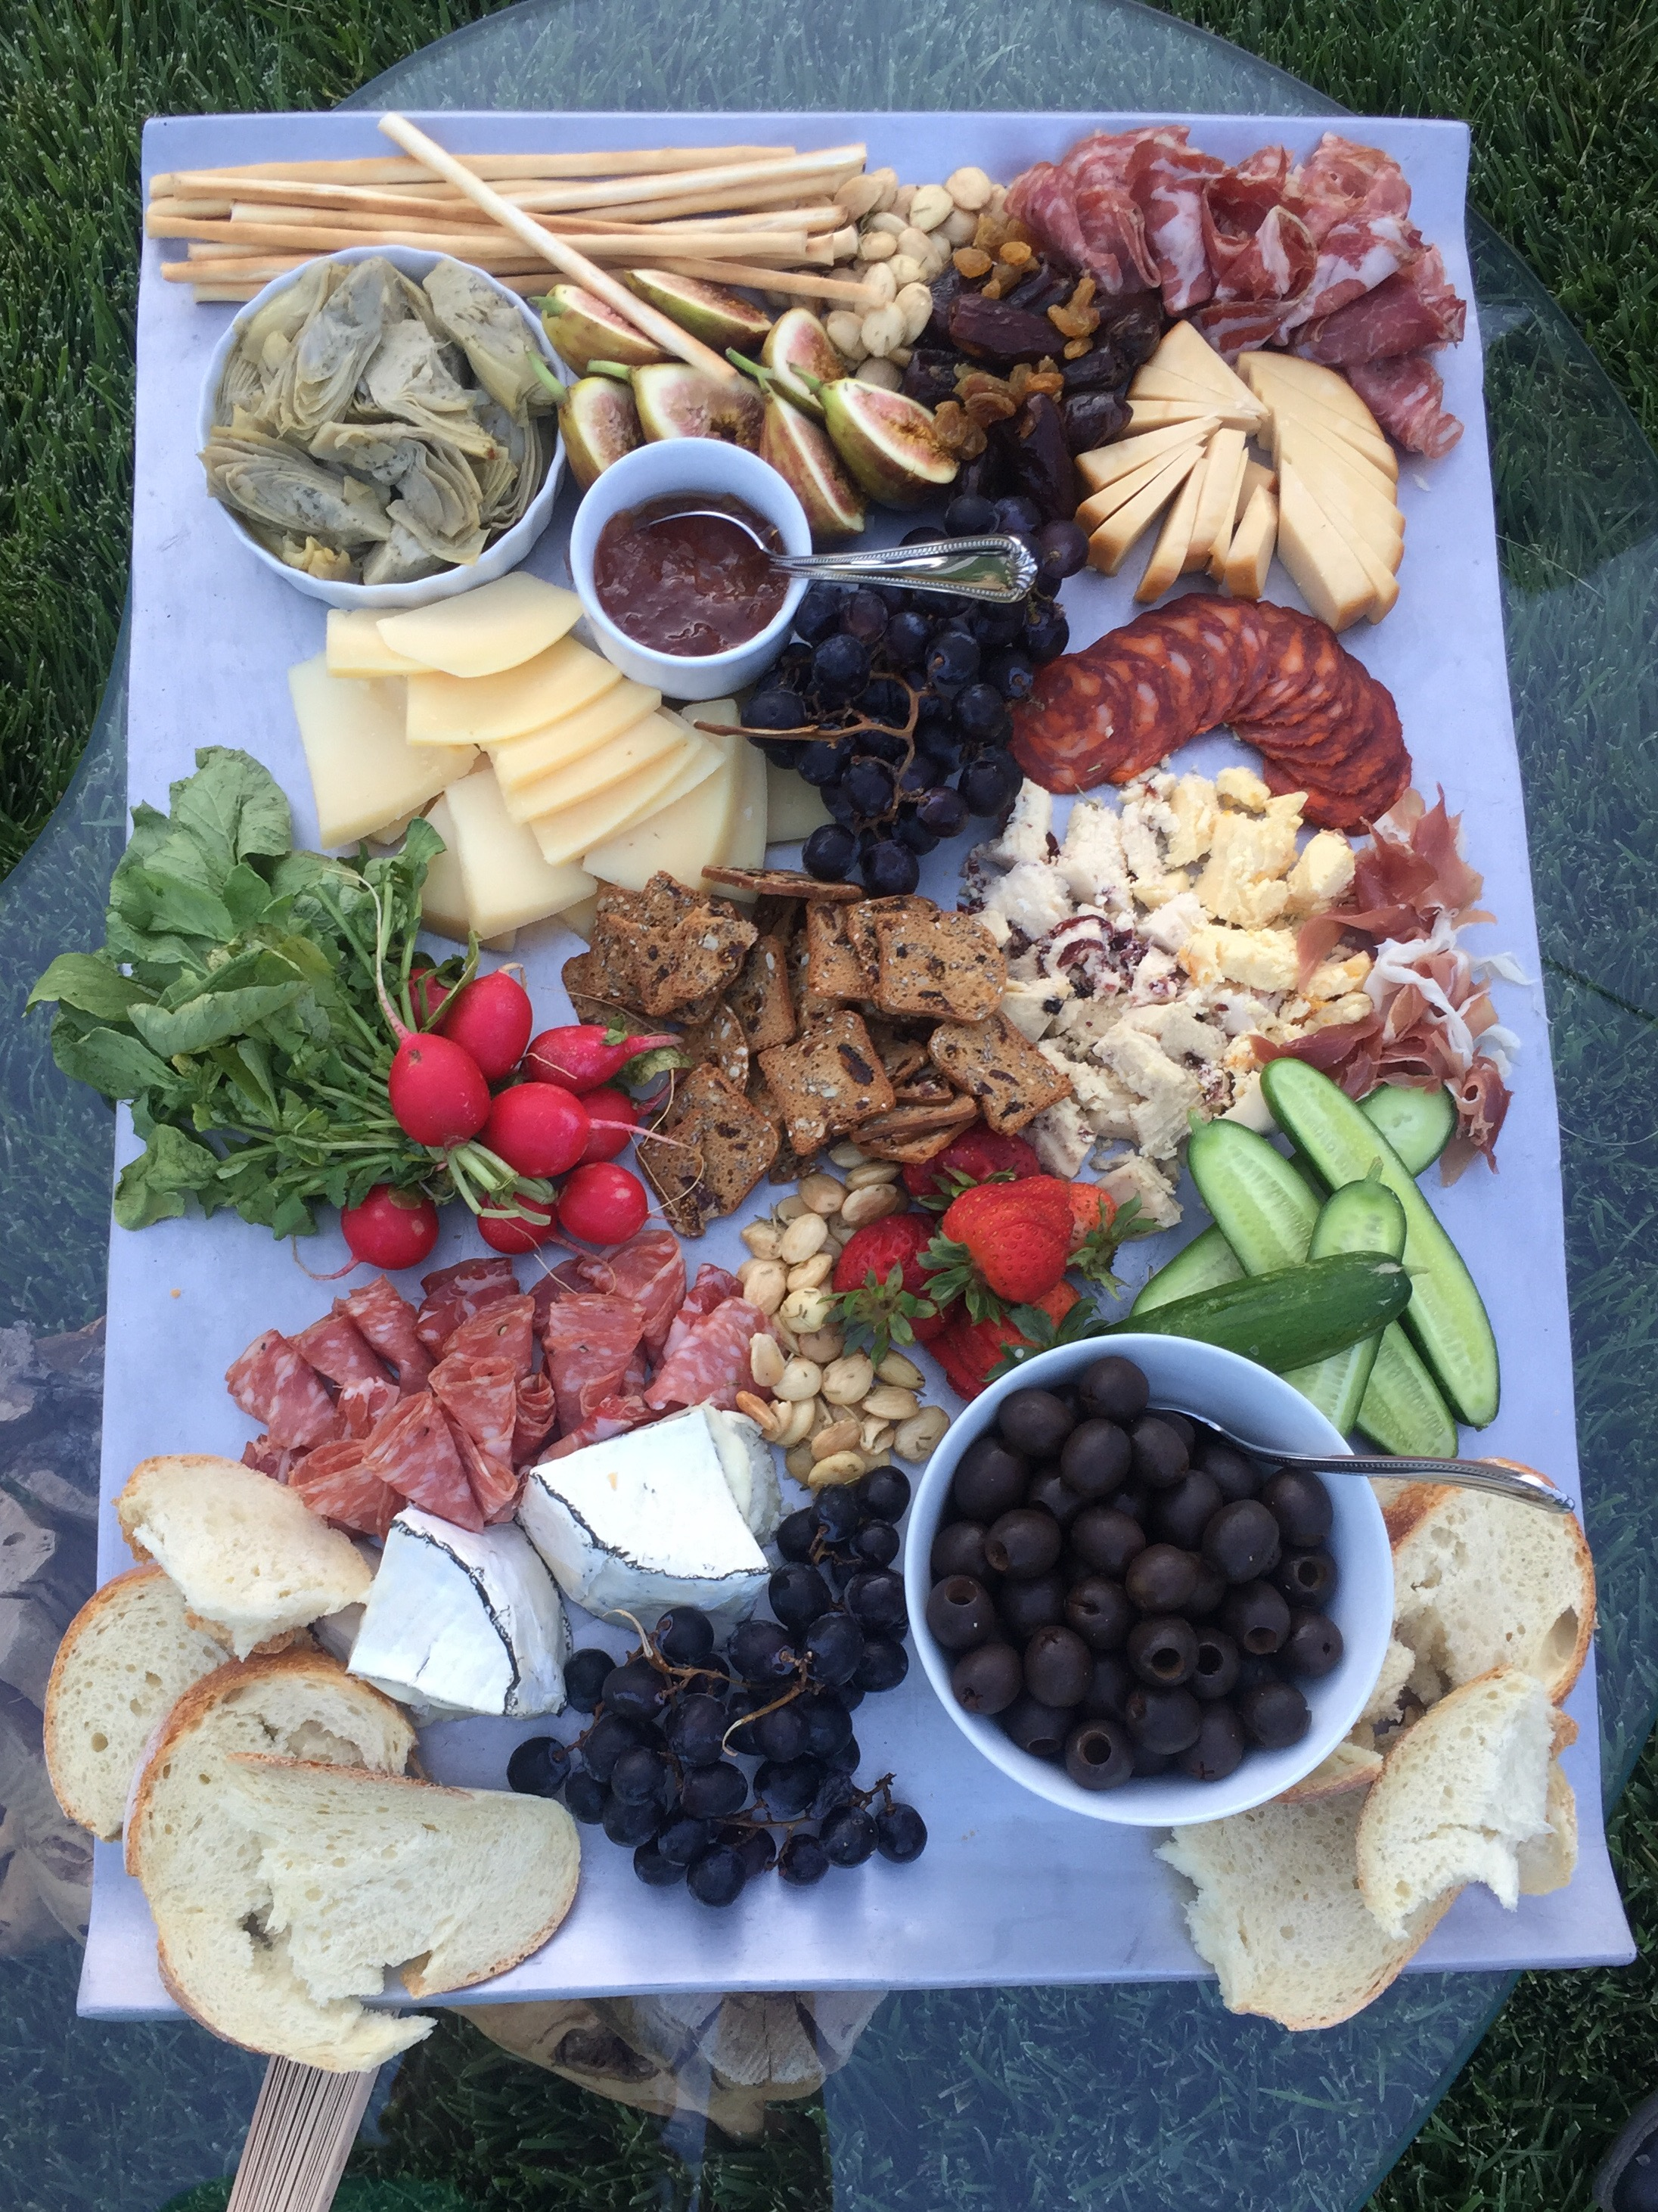 Wedding charcuterie board at a reception in Murrieta.